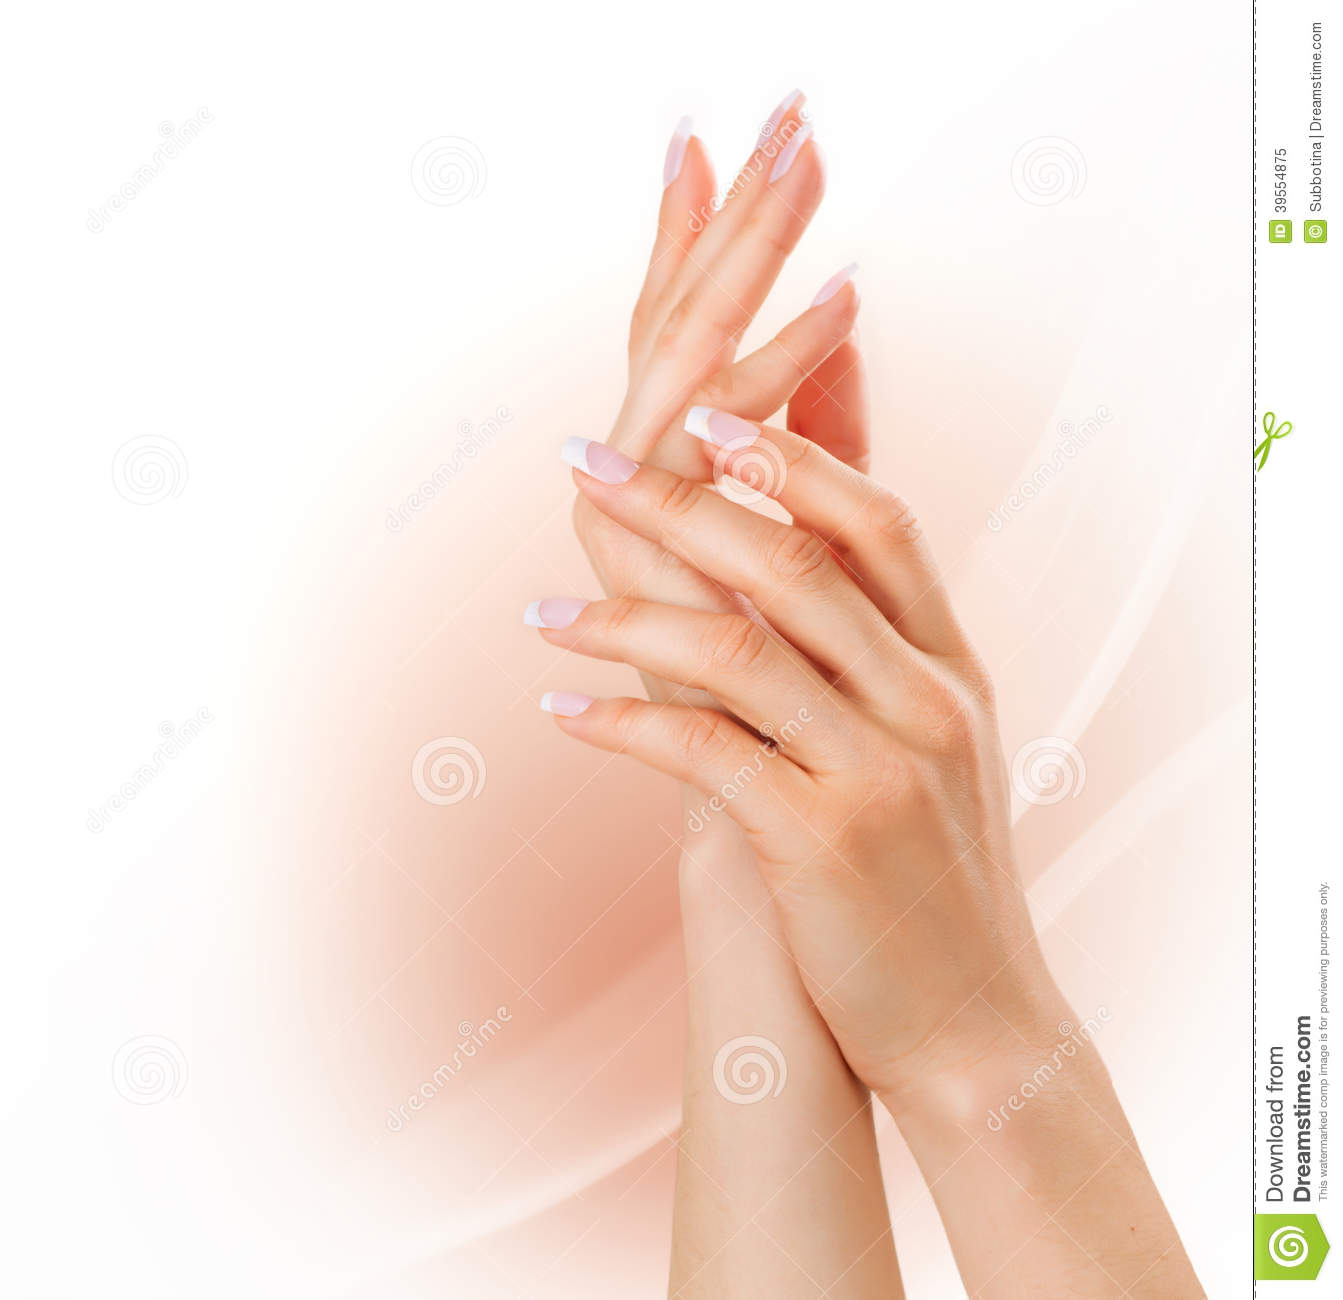 Free Manicure Beauty Hands Makeover: Woman Hands With French Manicure Stock Image